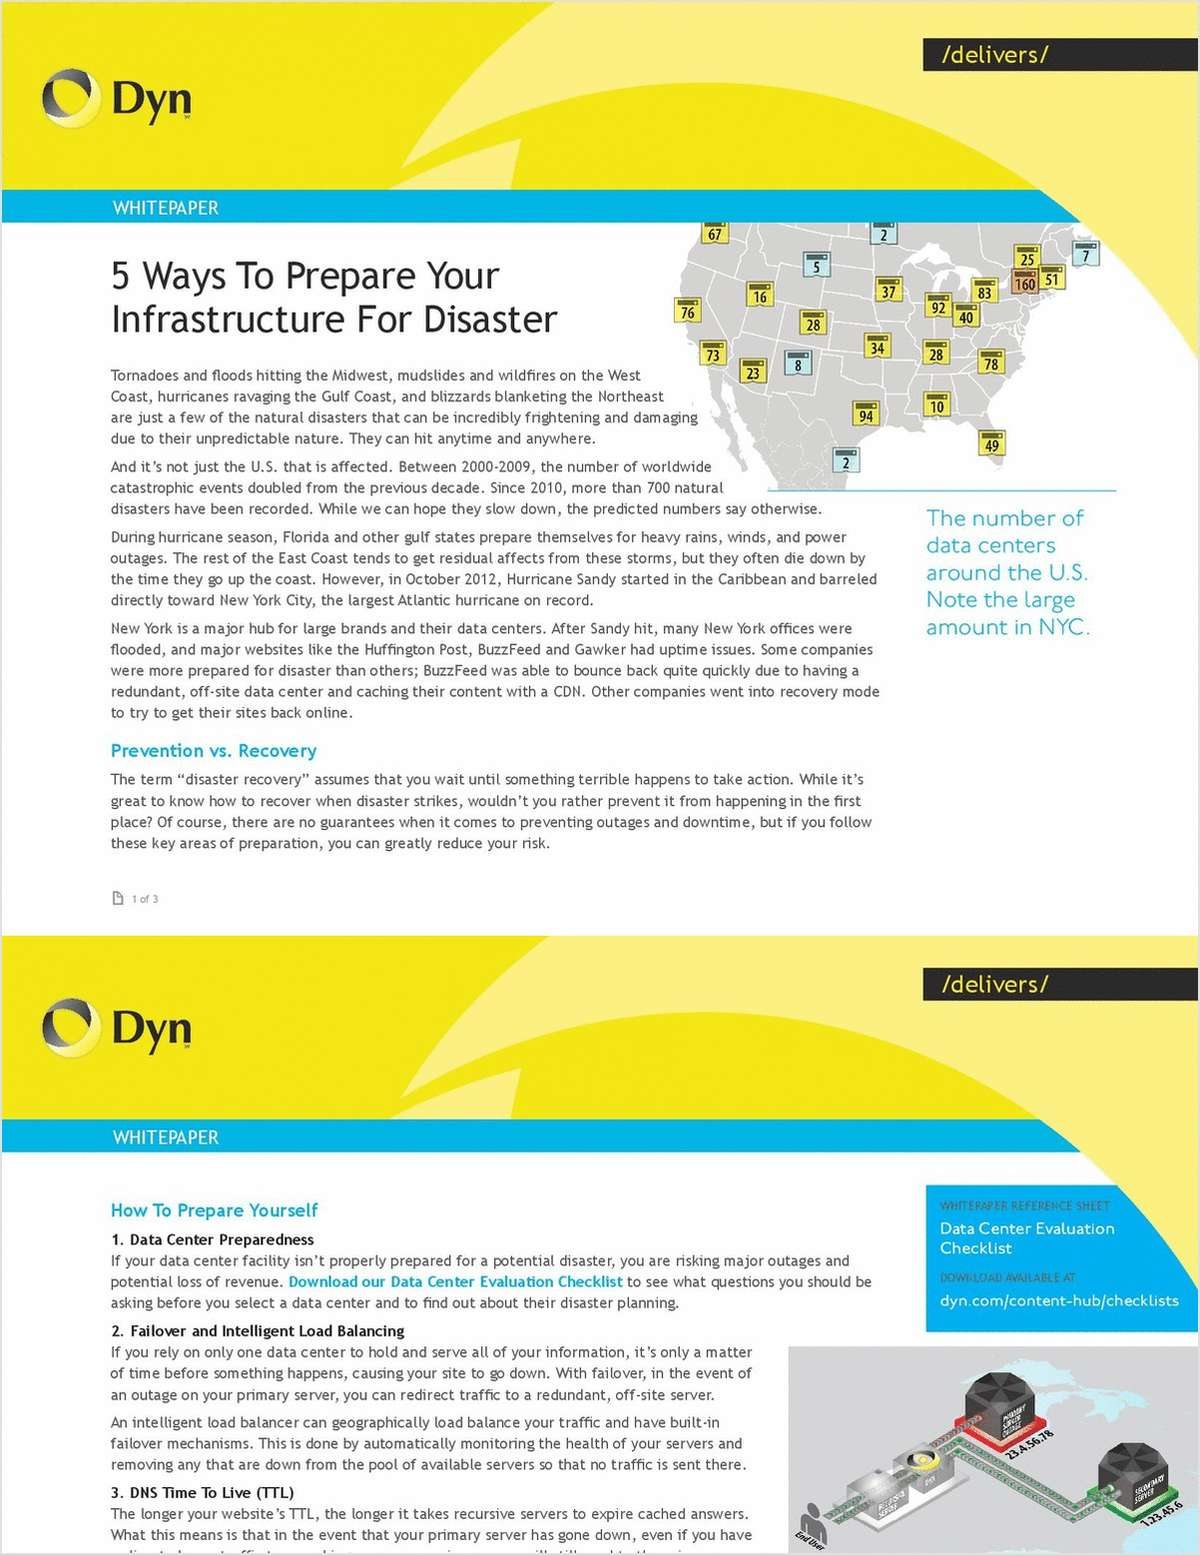 5 Ways to Prepare Your Infrastructure For Disaster